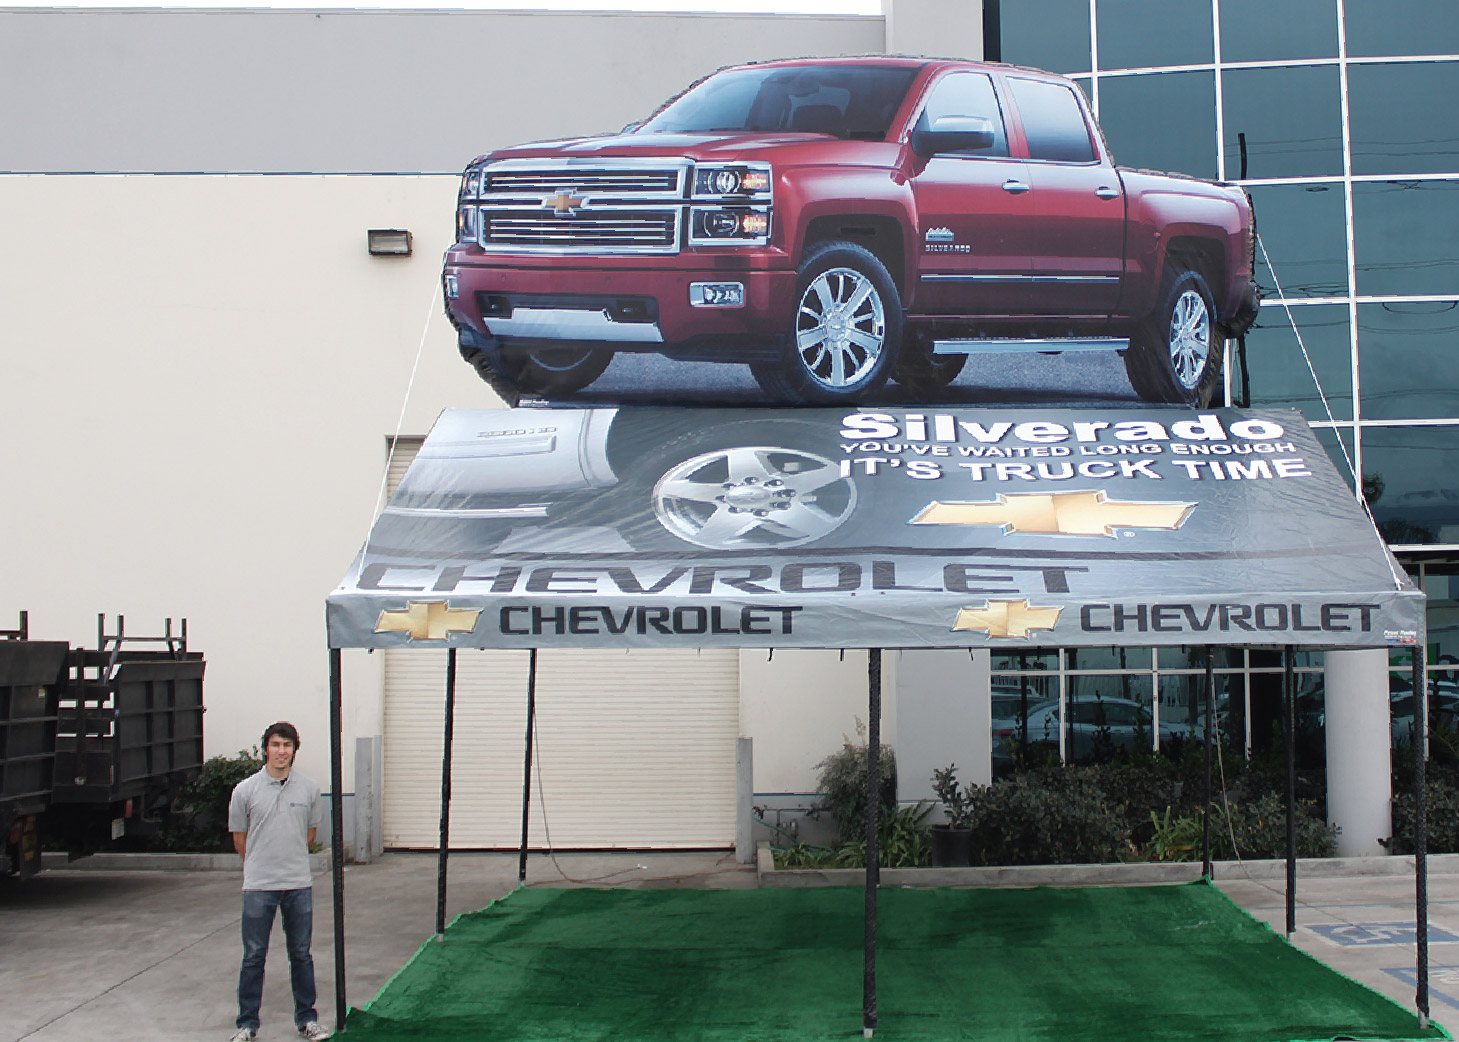 Chevrolet (Chevy) Silverado Frame Tent with Inflatable